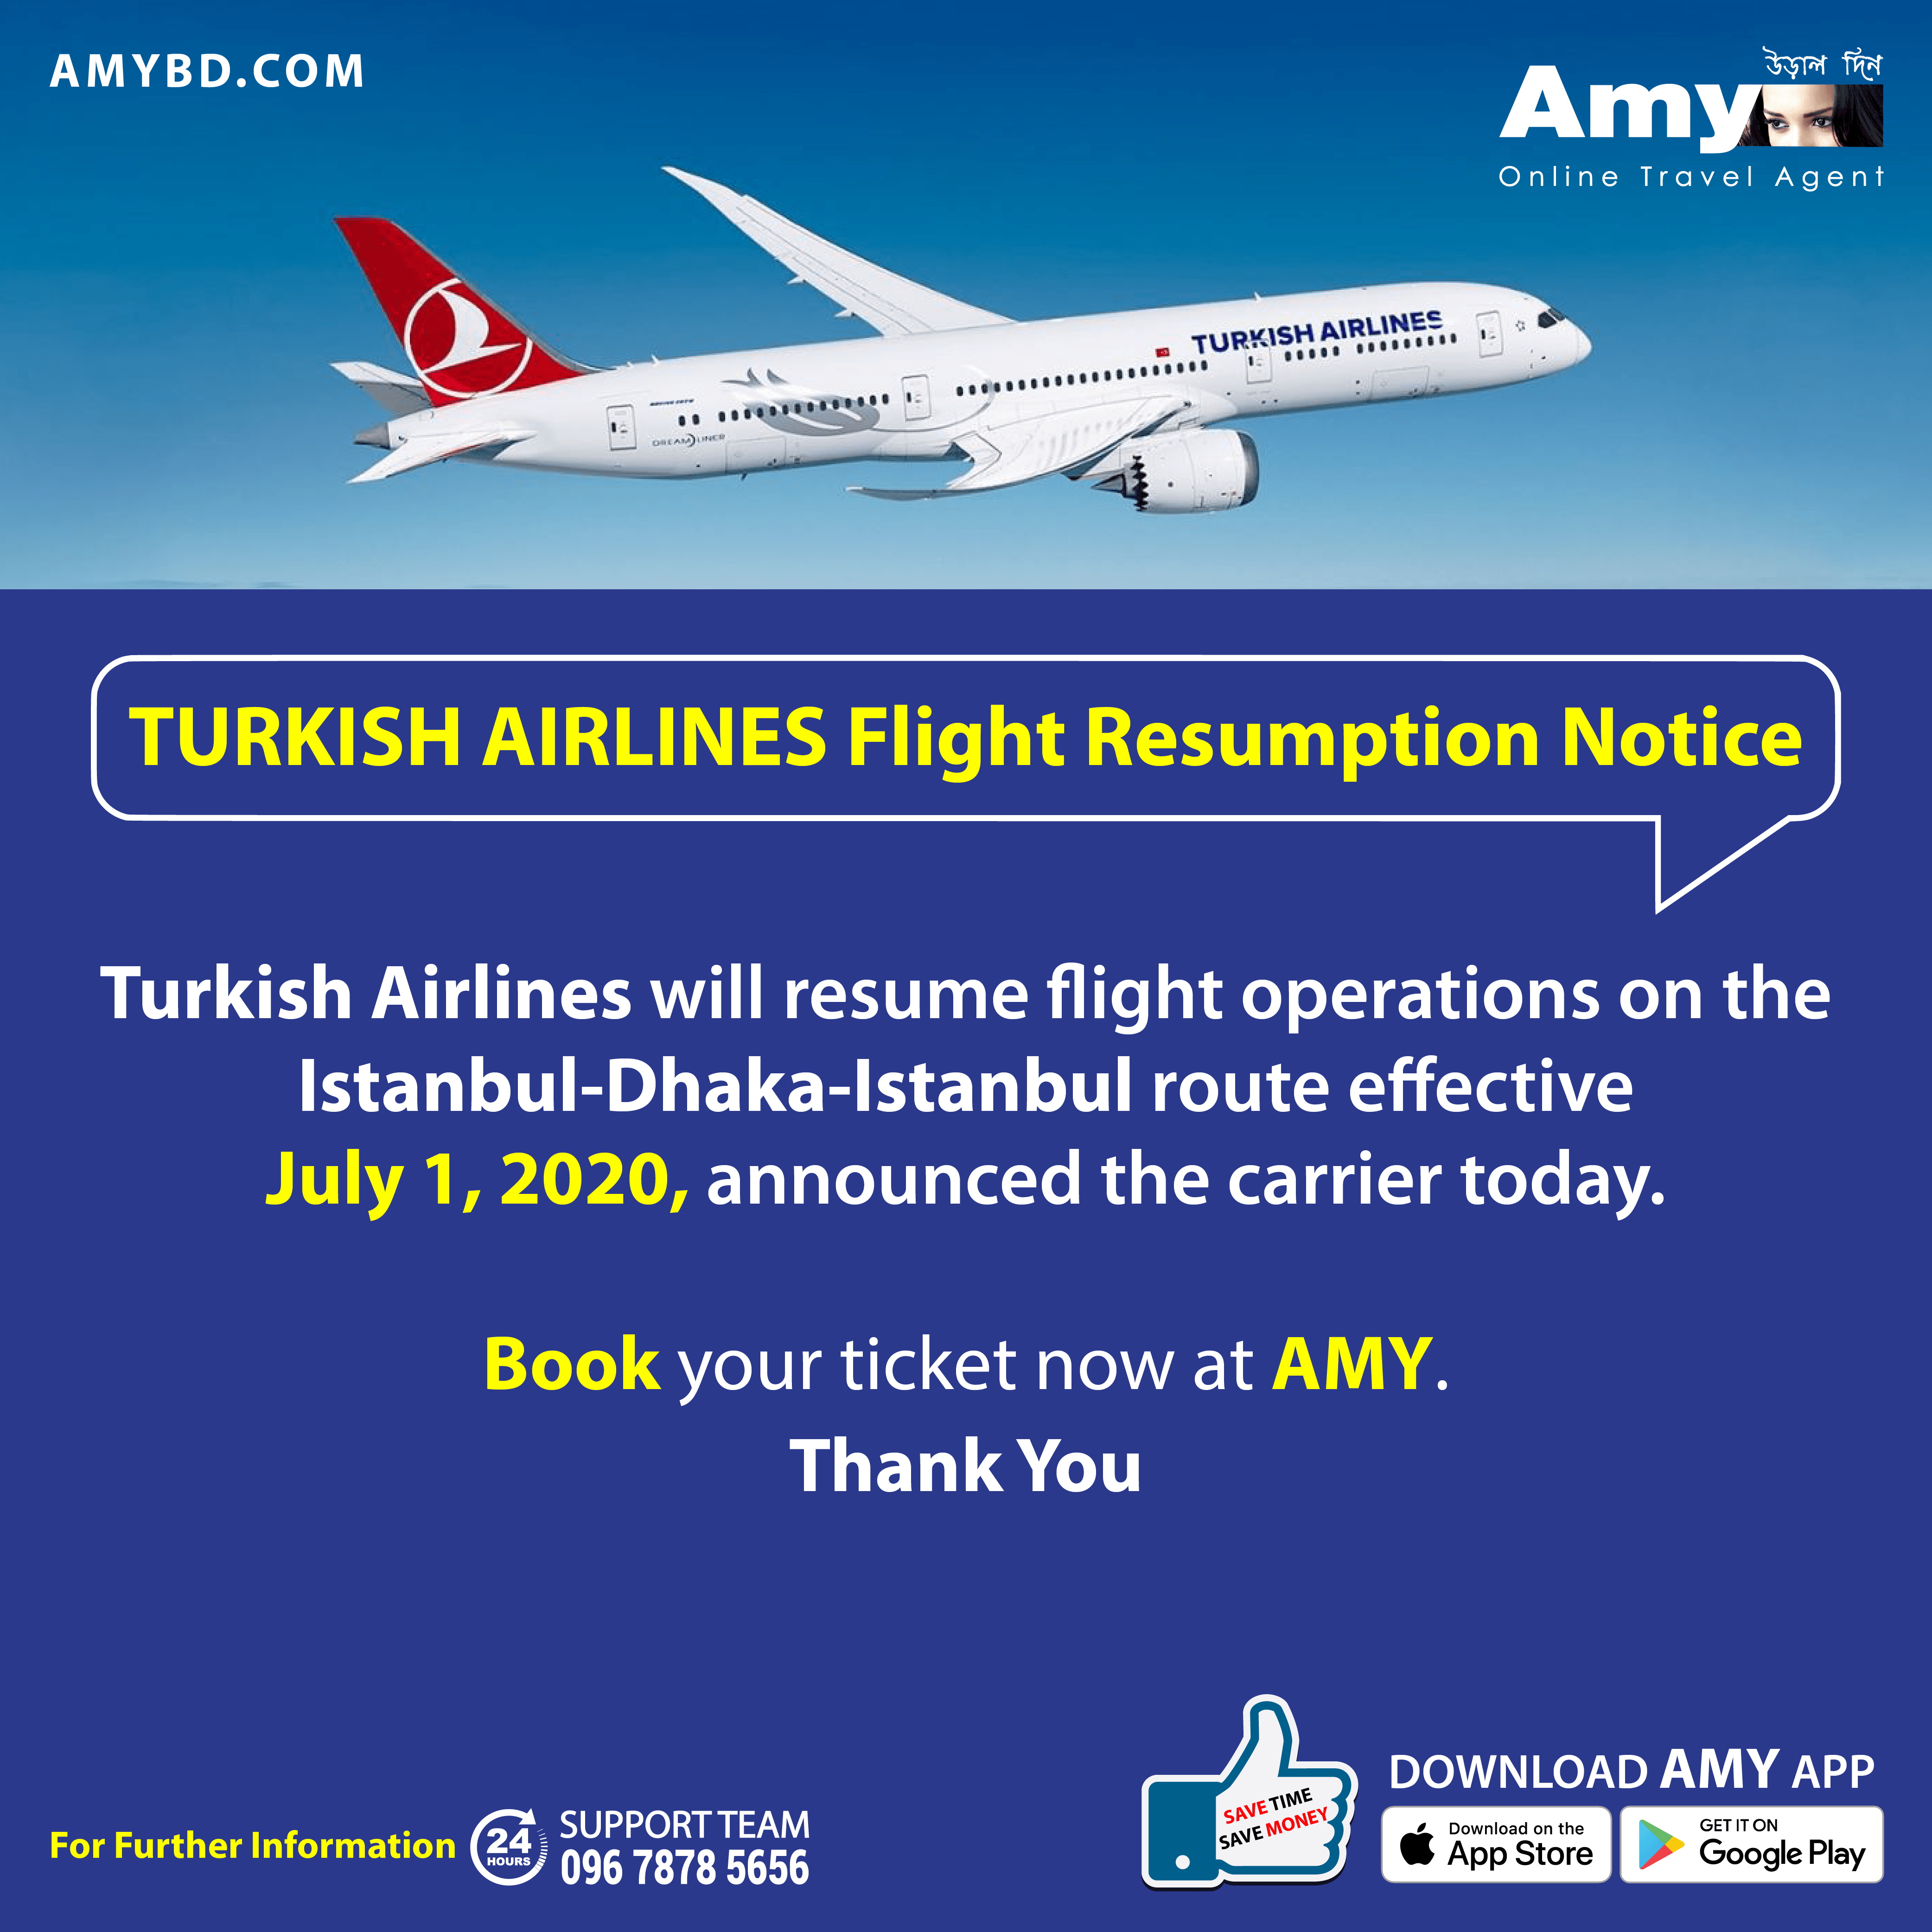 Turkish Airlines will resume flight operations on the